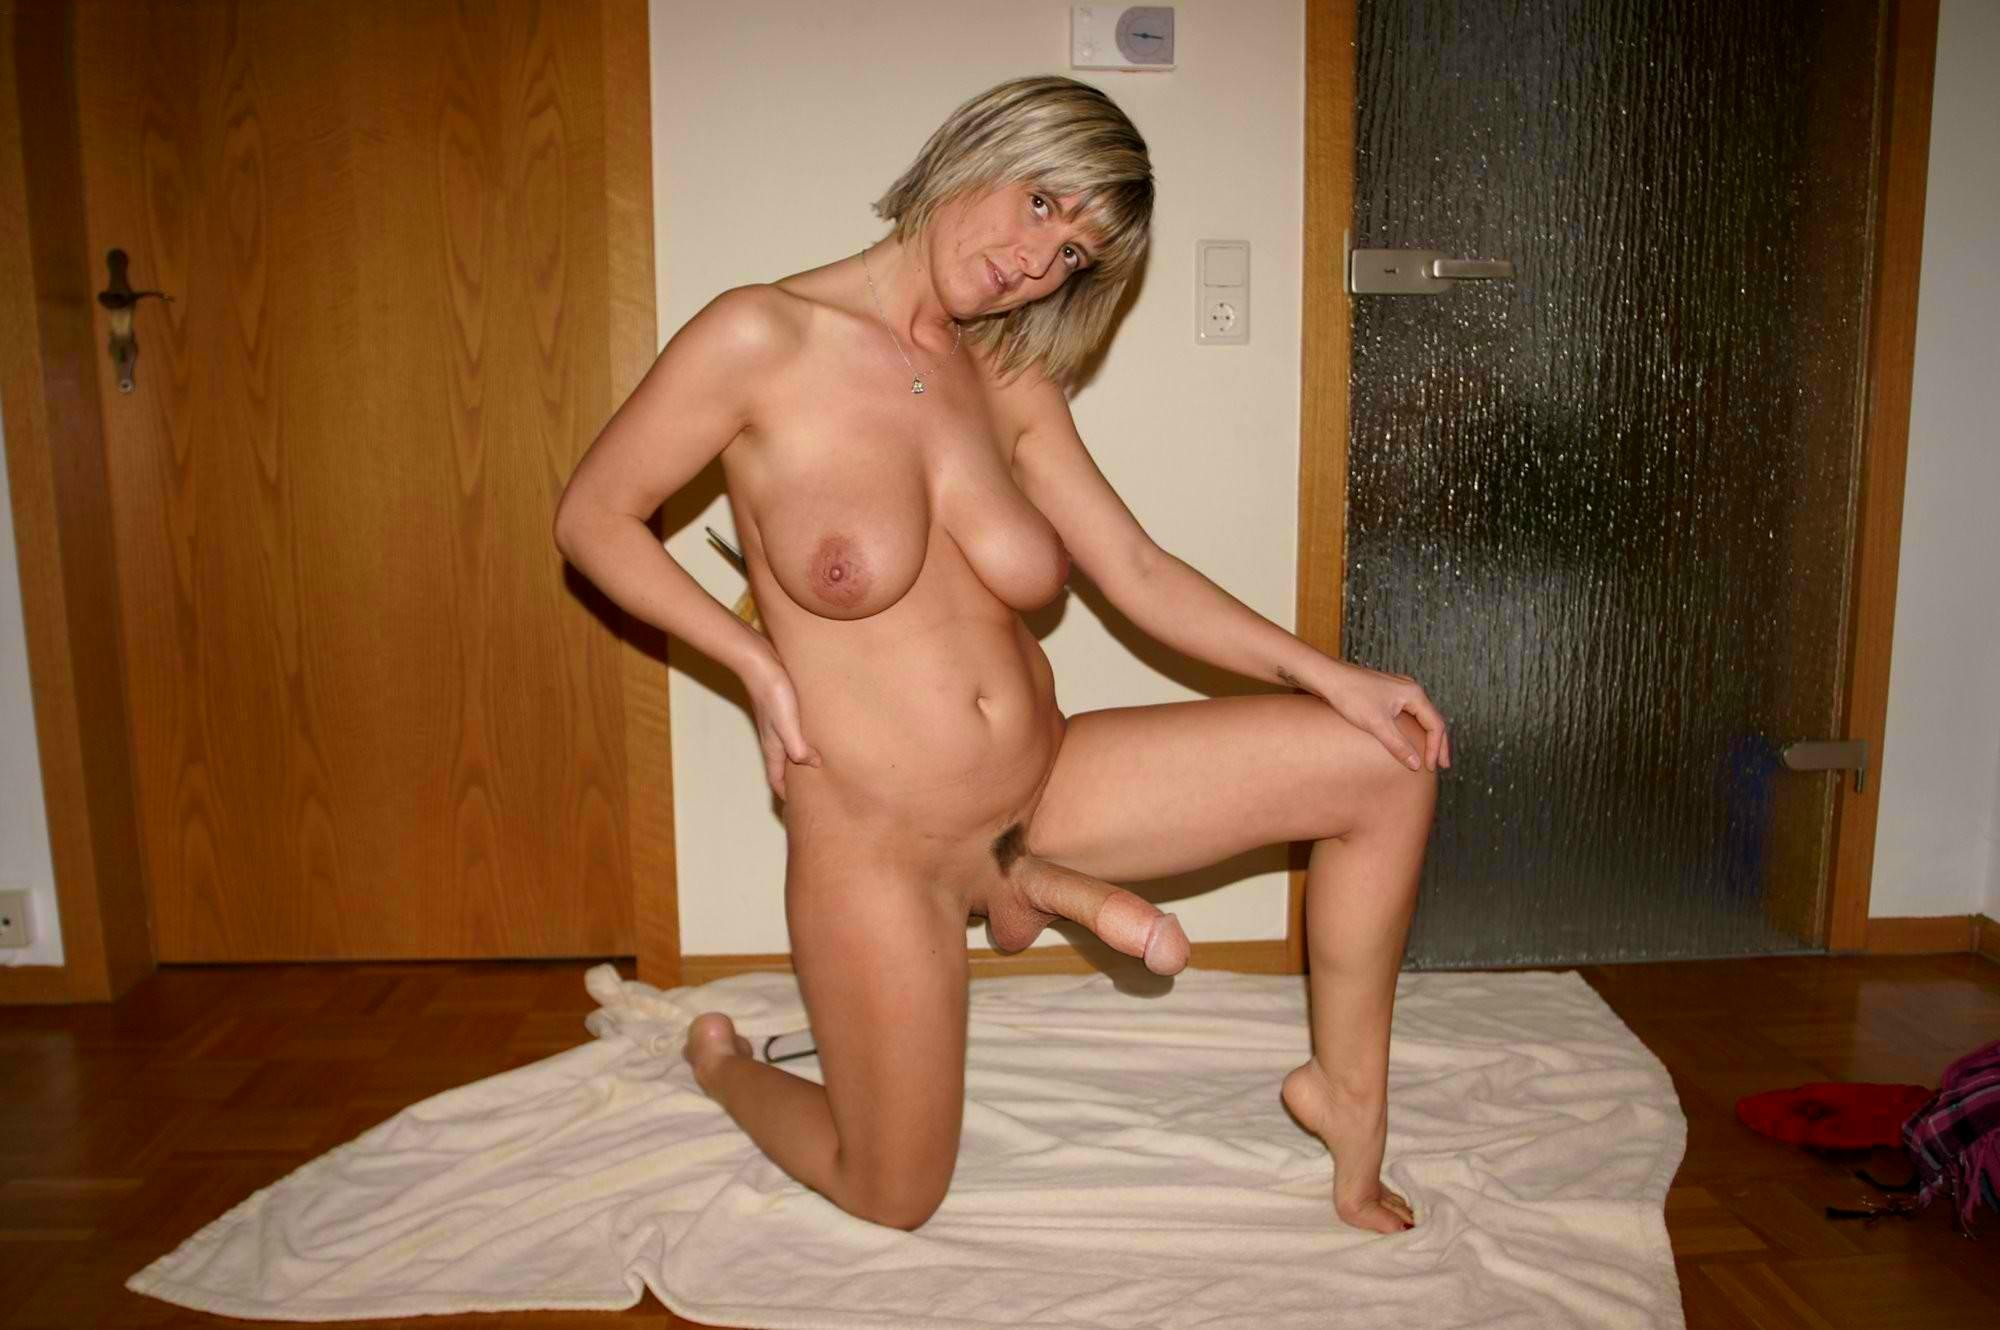 Creampie old nudist photos would like